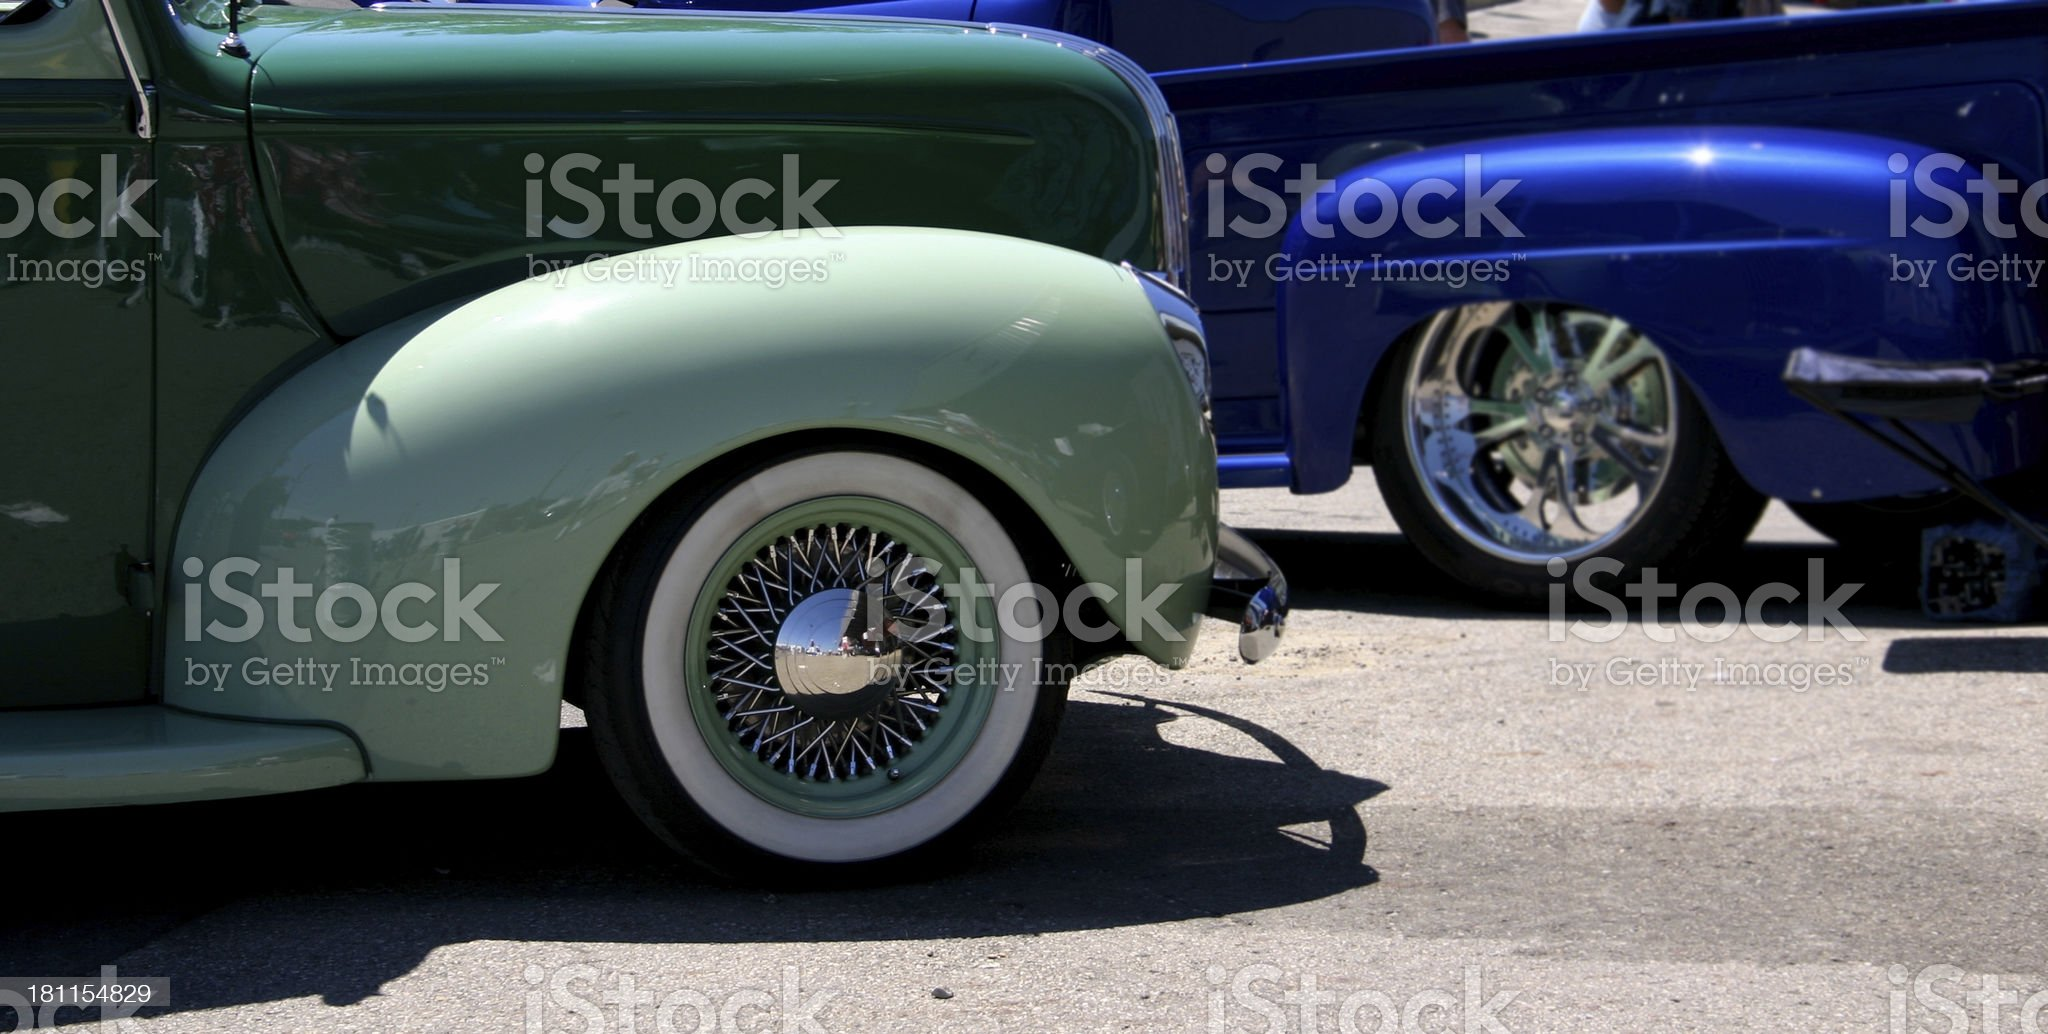 Cool Cars royalty-free stock photo